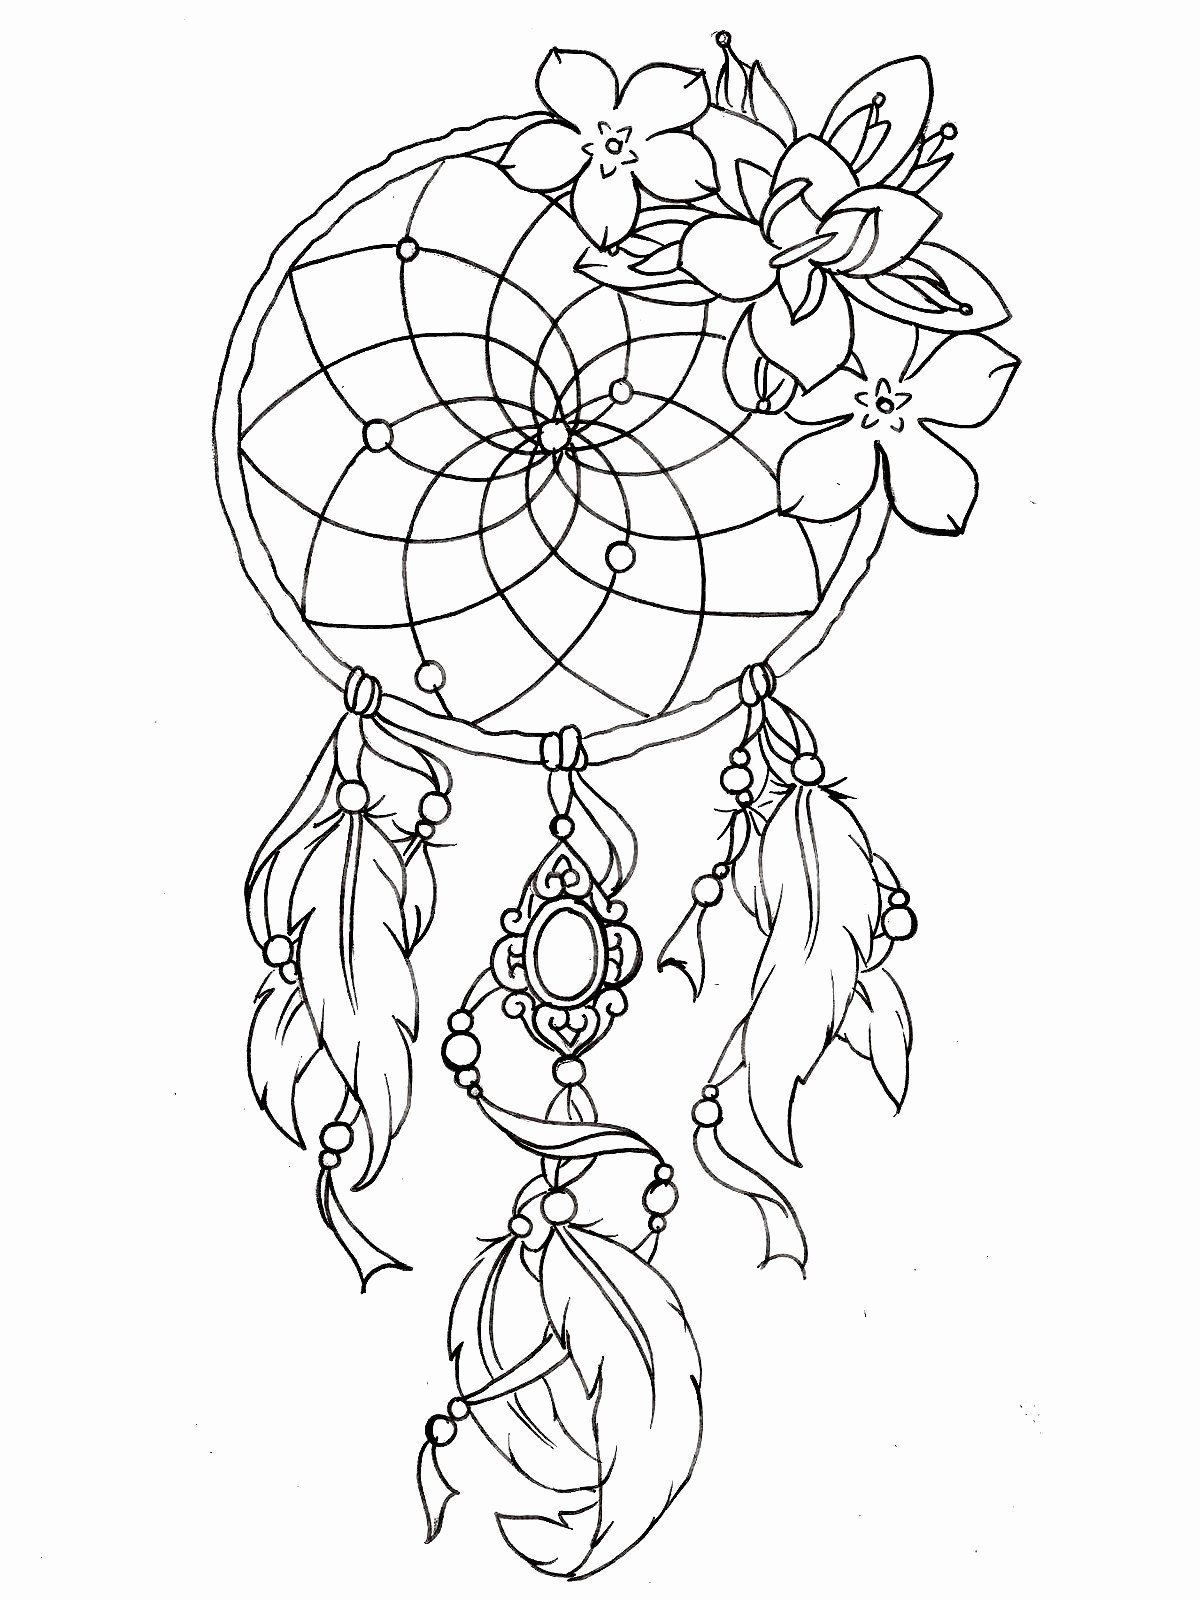 Dream Catcher Coloring Pages Beautiful Dream Catcher Coloring Page Dream Catcher Coloring Pages Tattoo Coloring Book Mandala Coloring Pages